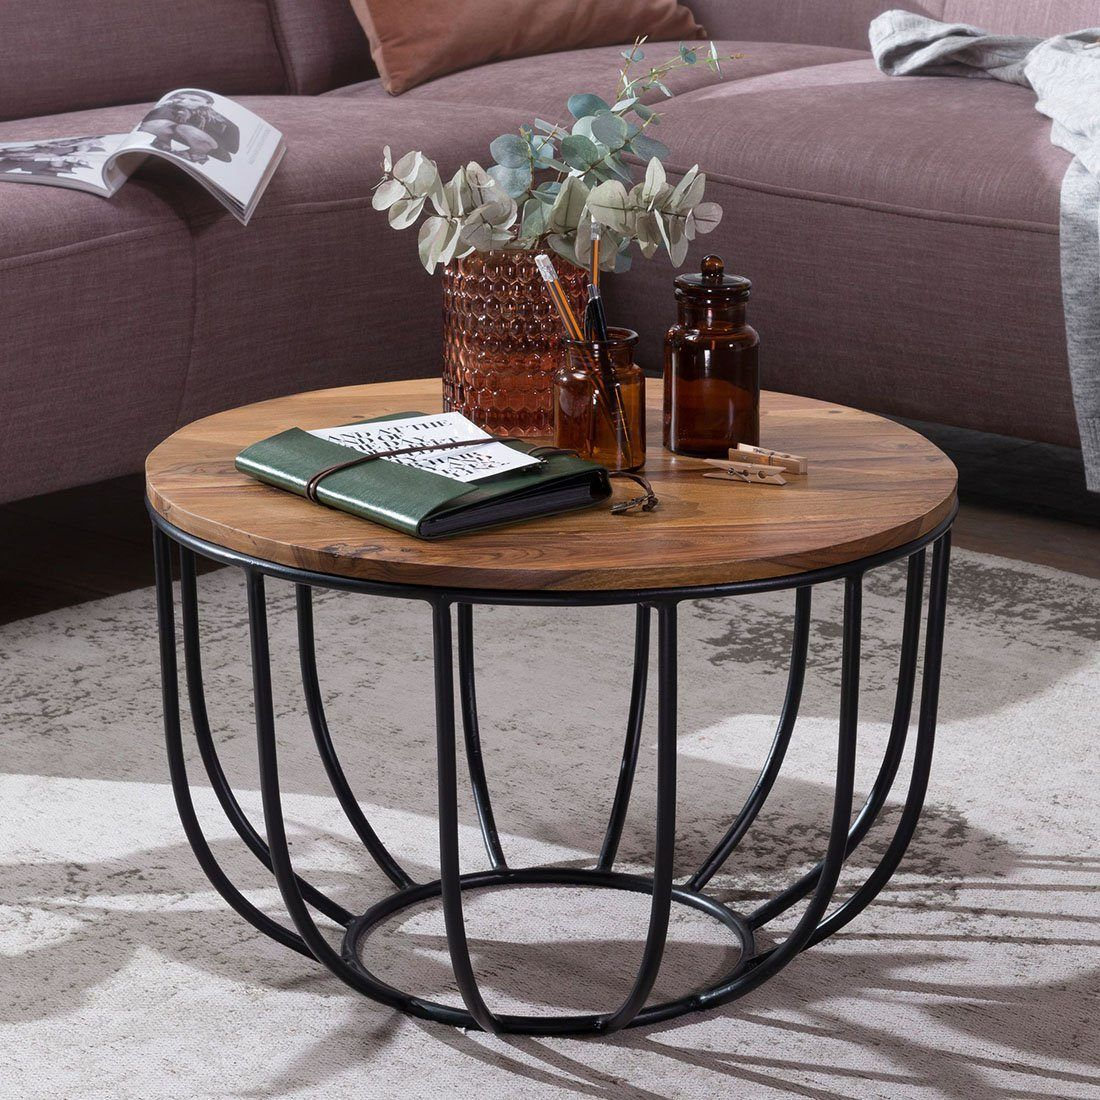 Solid Wood Indiana Bowed Round Coffee Table Saraf Furniture In 2020 Coffee Table Wood Coffee Table Round Coffee Table [ 1100 x 1100 Pixel ]